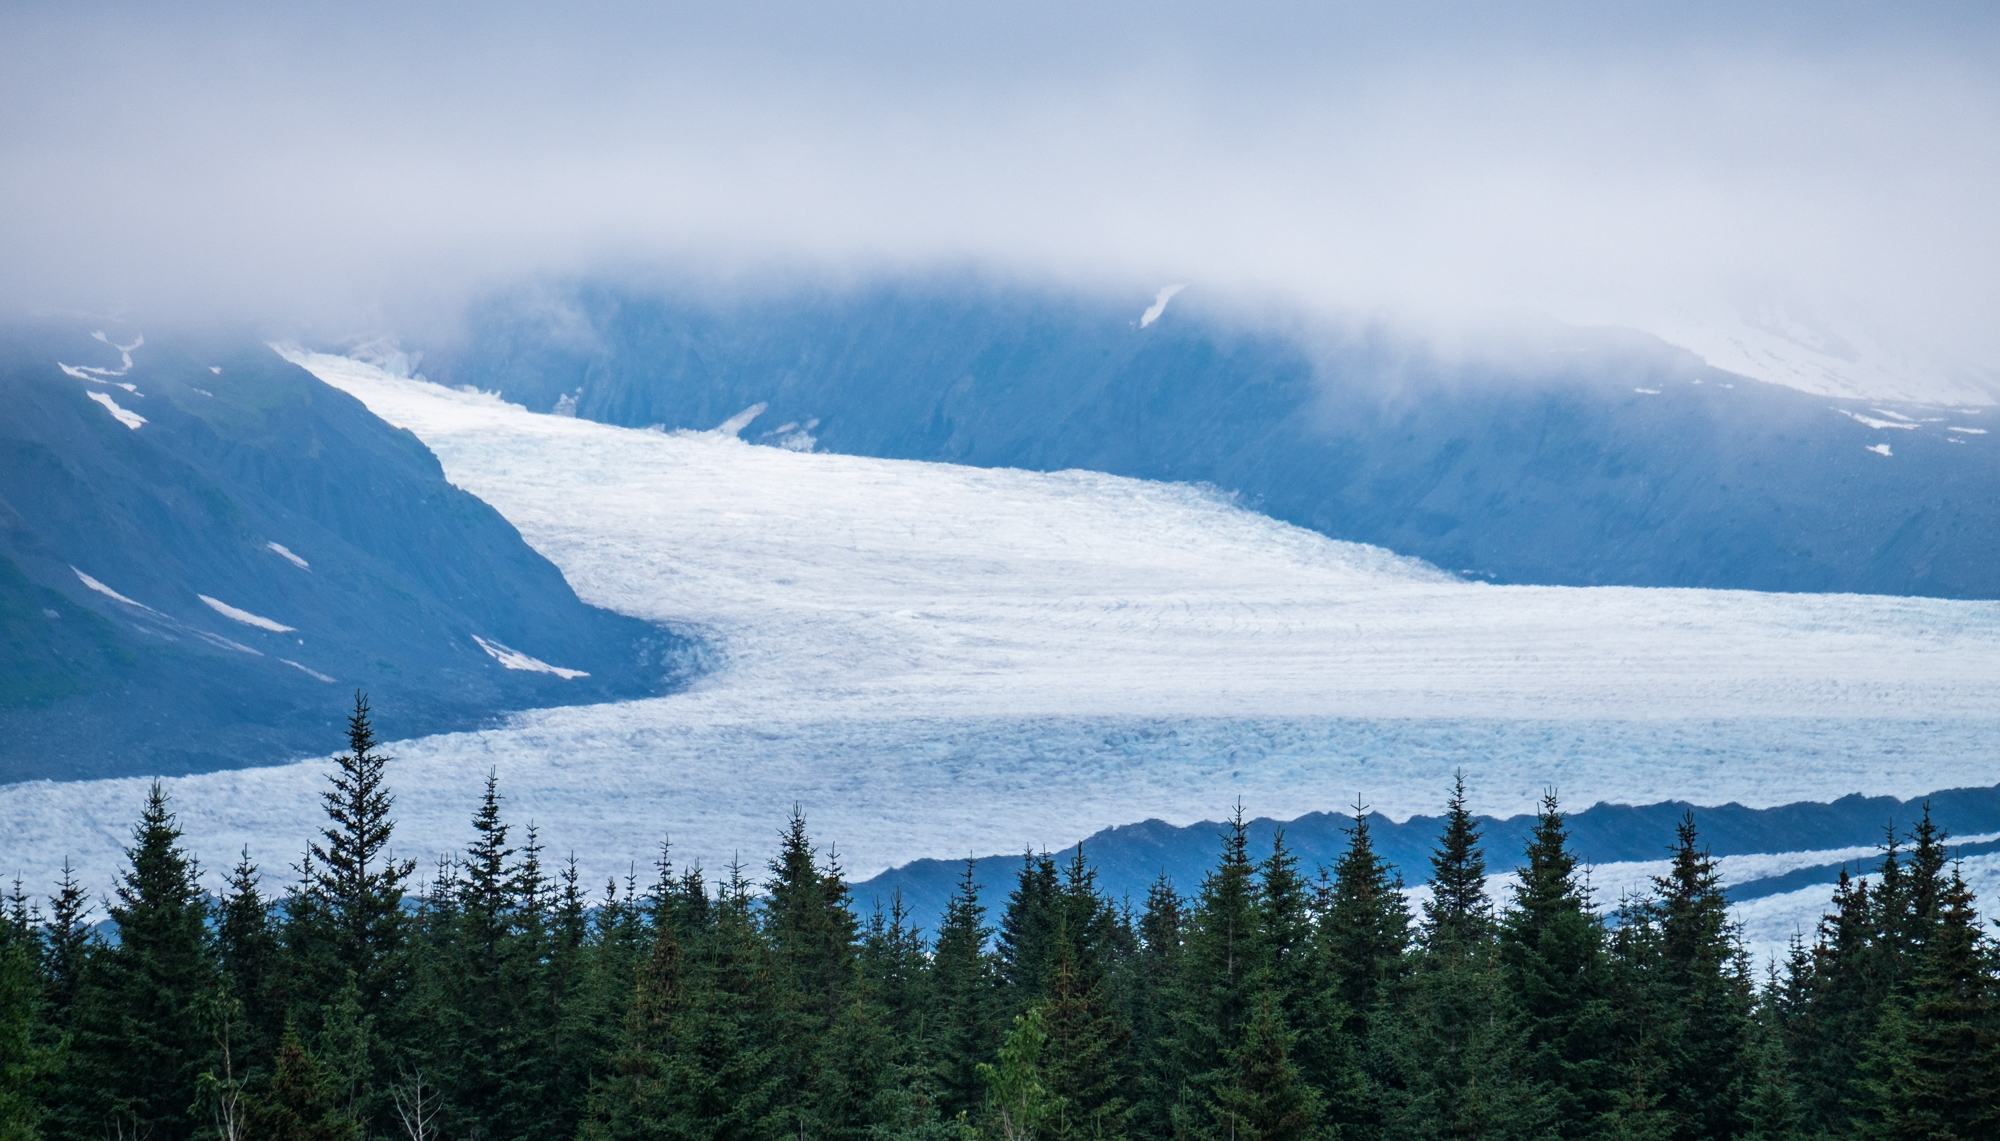 Bear Glacier is quite an impressive sight!